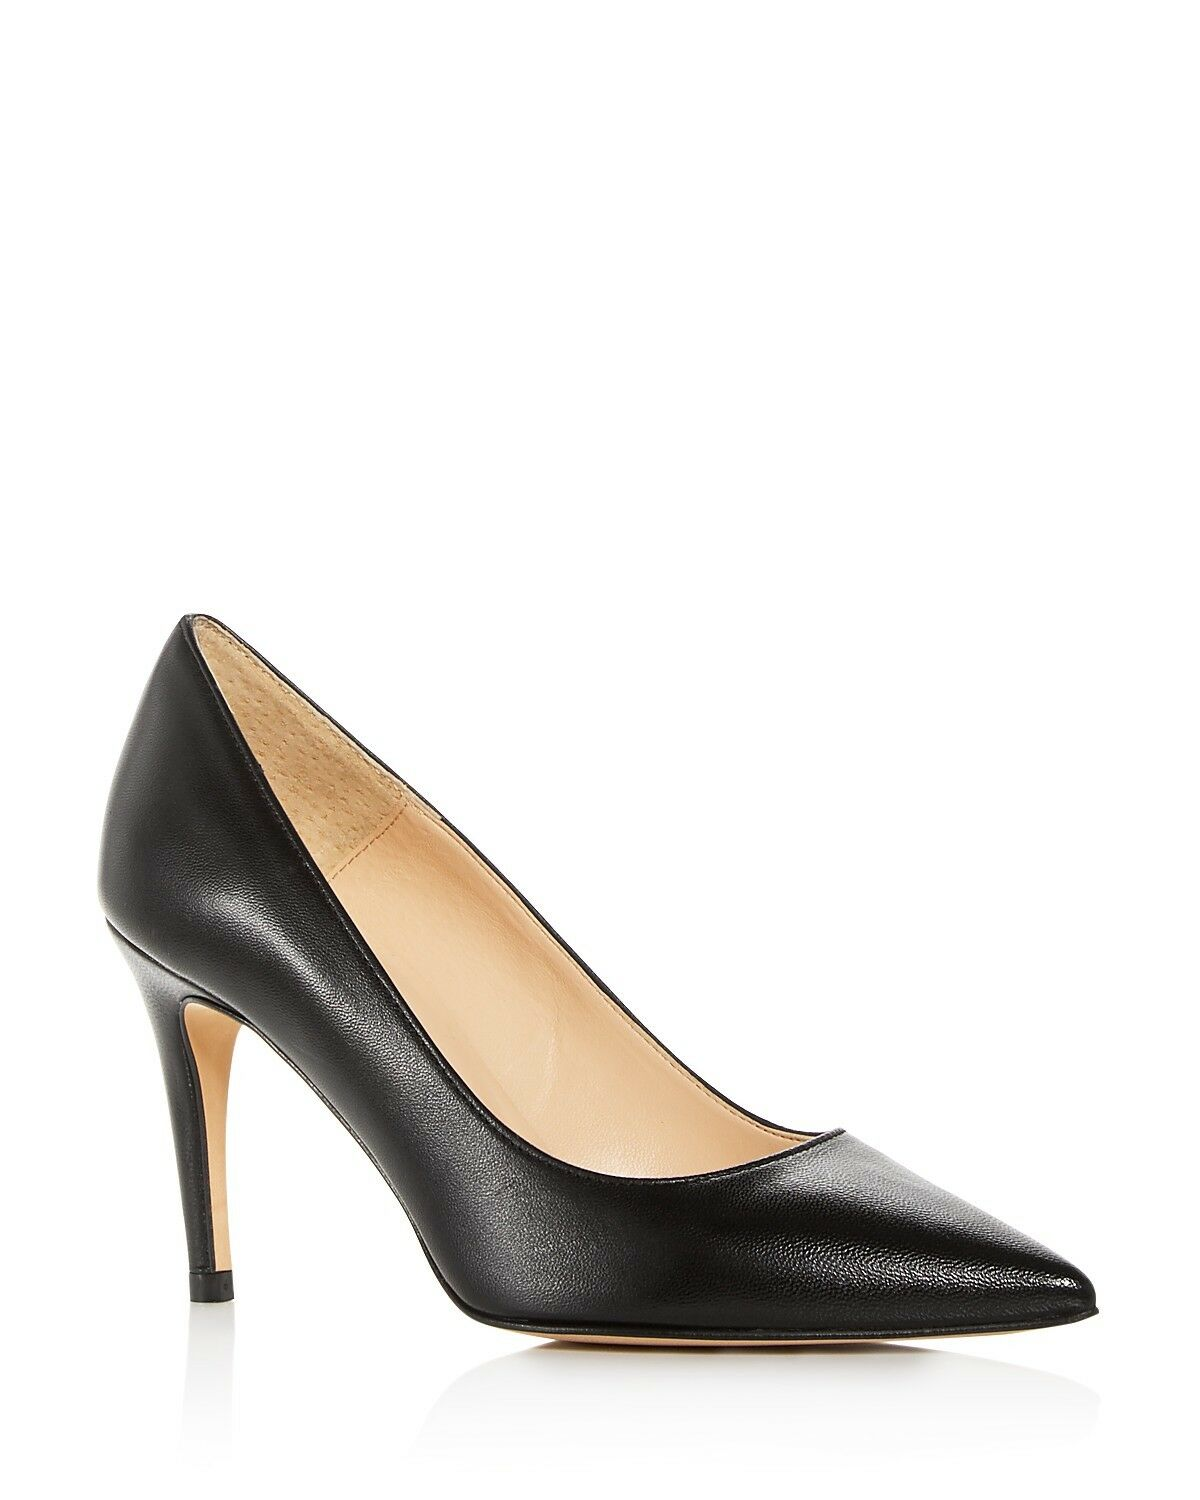 Bloomingdale's Women's Margo Italian Leather Pointed Toe Pumps Black Size